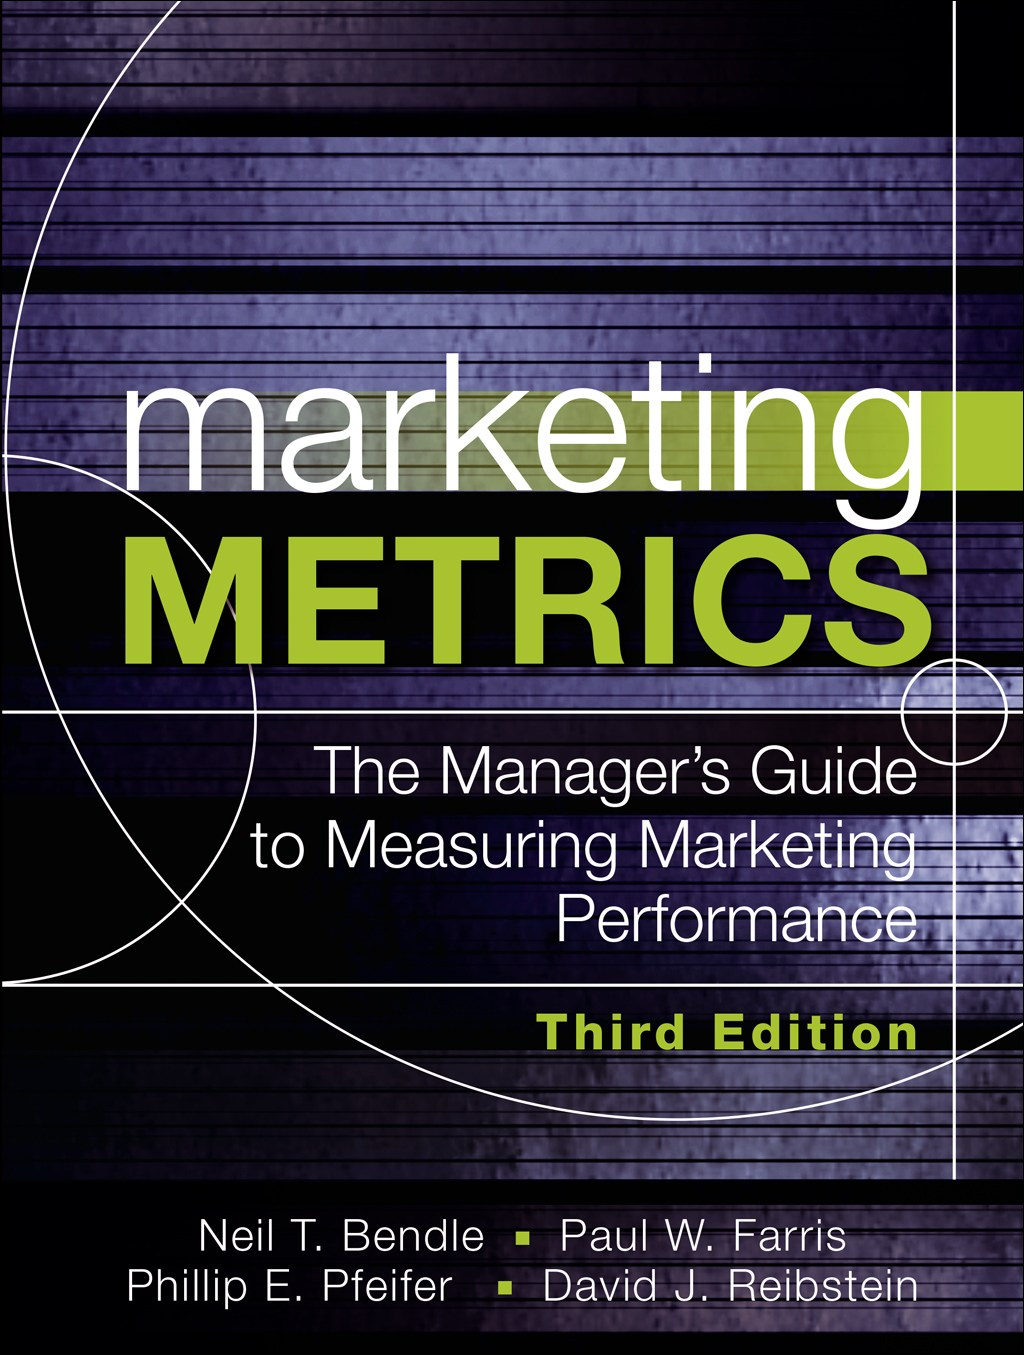 Marketing Metrics: The Manager's Guide to Measuring Marketing Performance, 3rd Edition